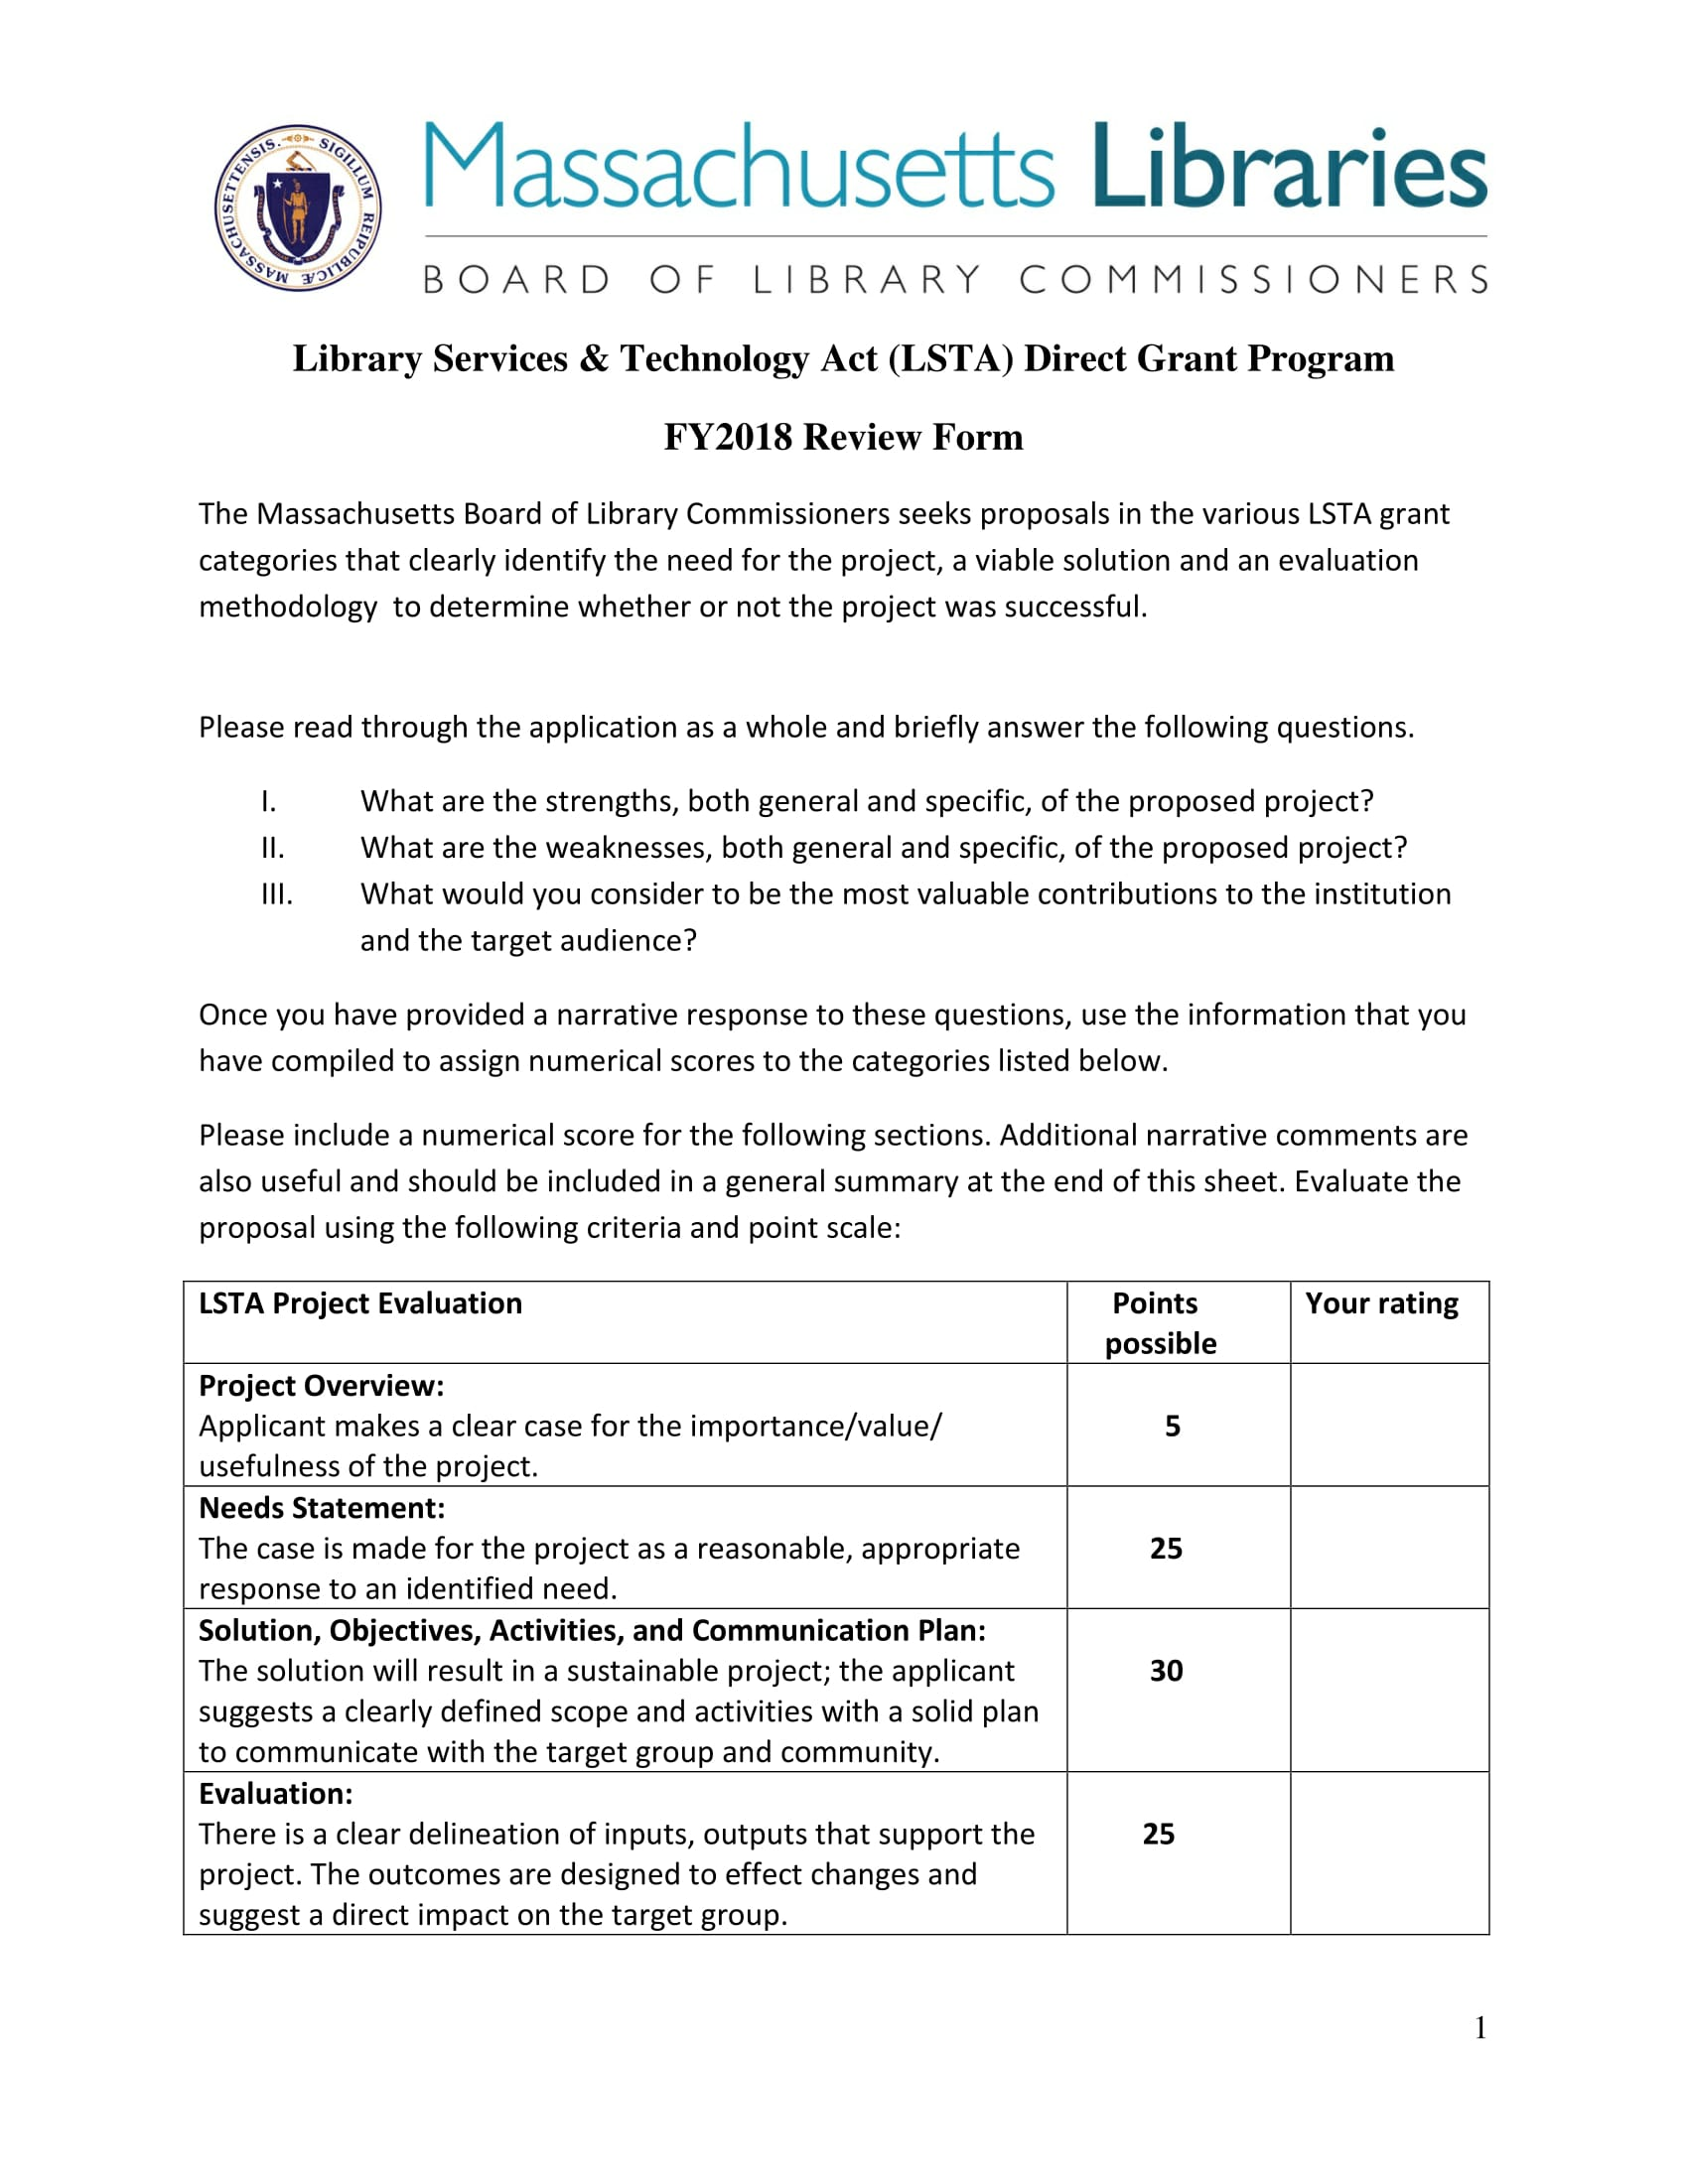 grant application review form 1